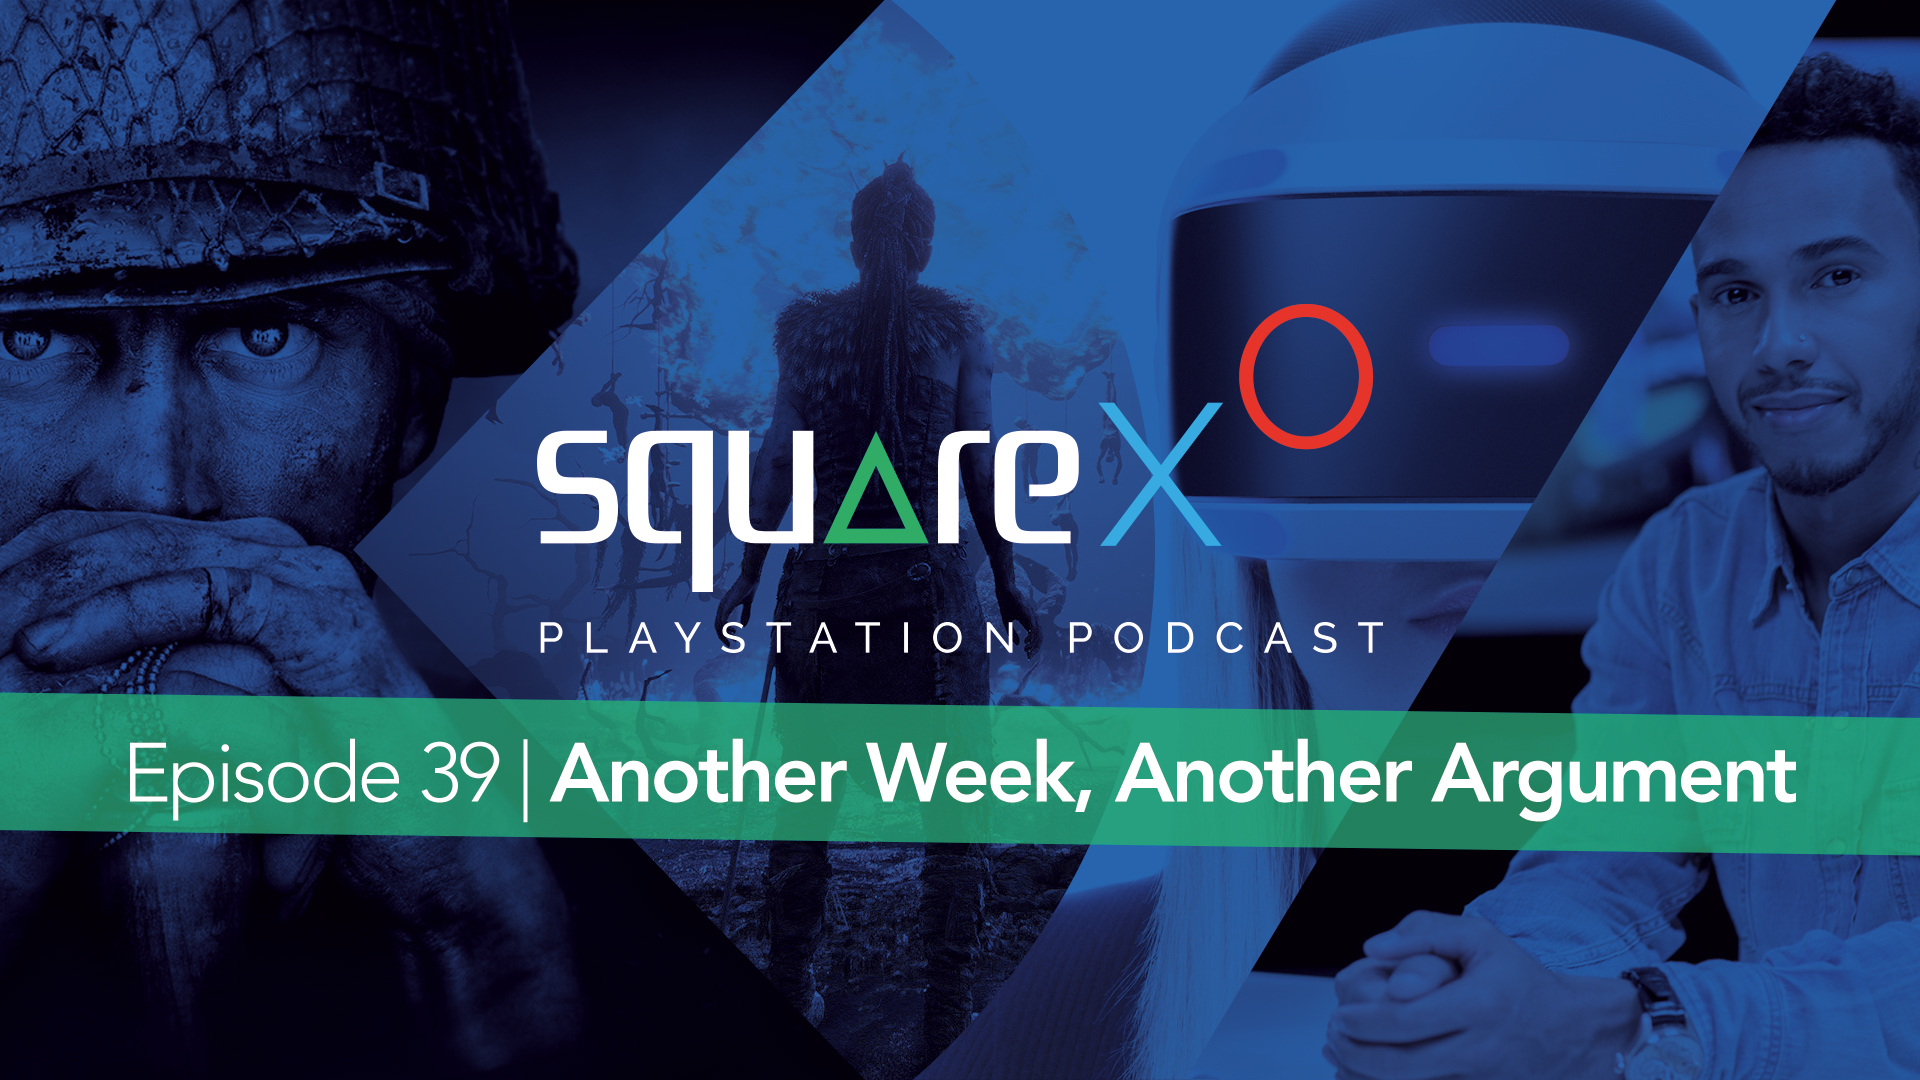 Episode 39 | Another Week, Another Argument